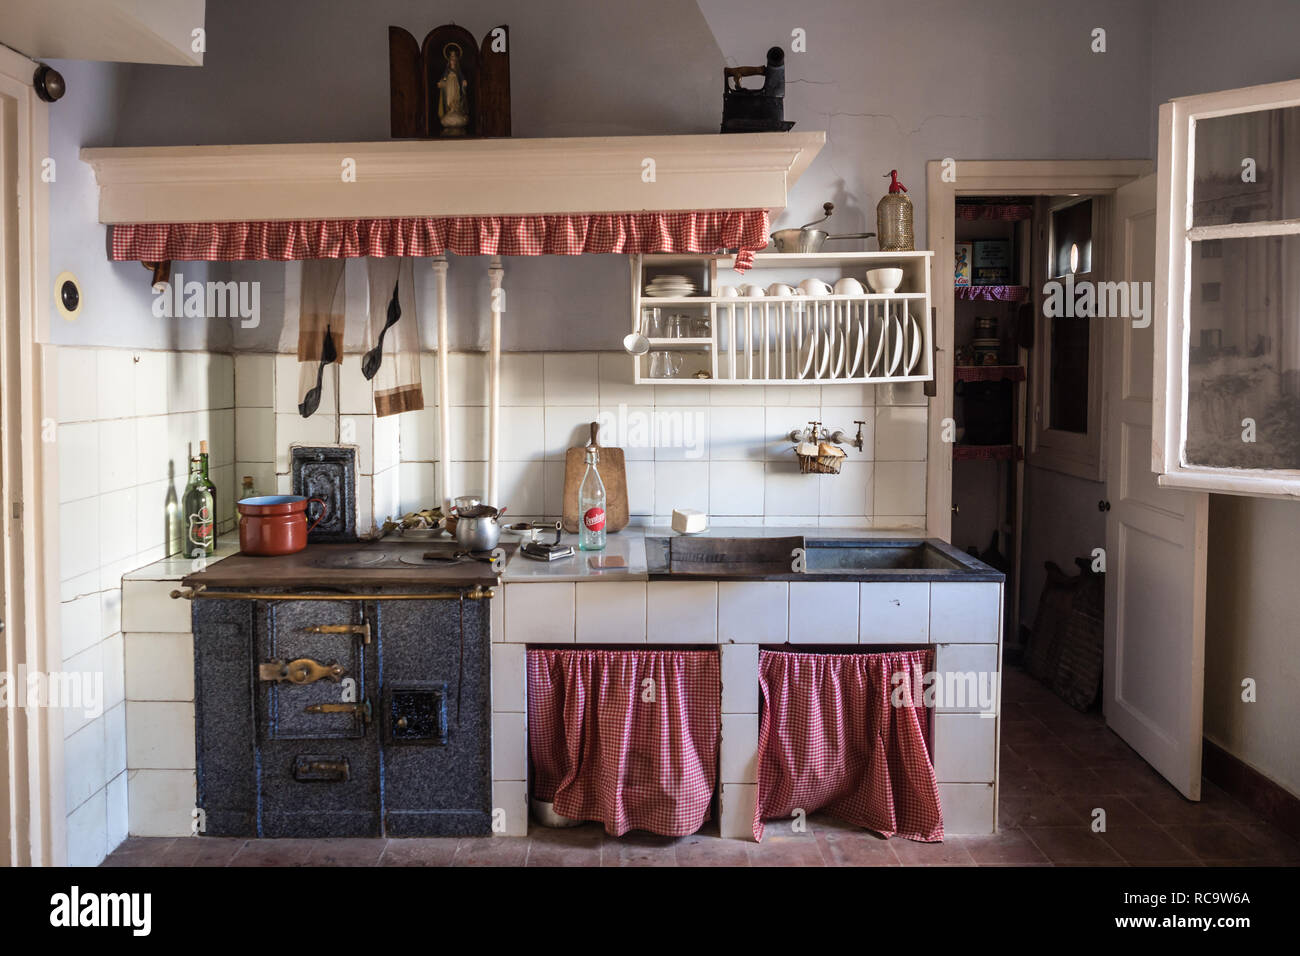 Old Kitchen Appliance for Decoration and Interior Old Pastry Machine Old Kitchen Appliance Old Kitchen Retro Vintage Kitchen Appliance